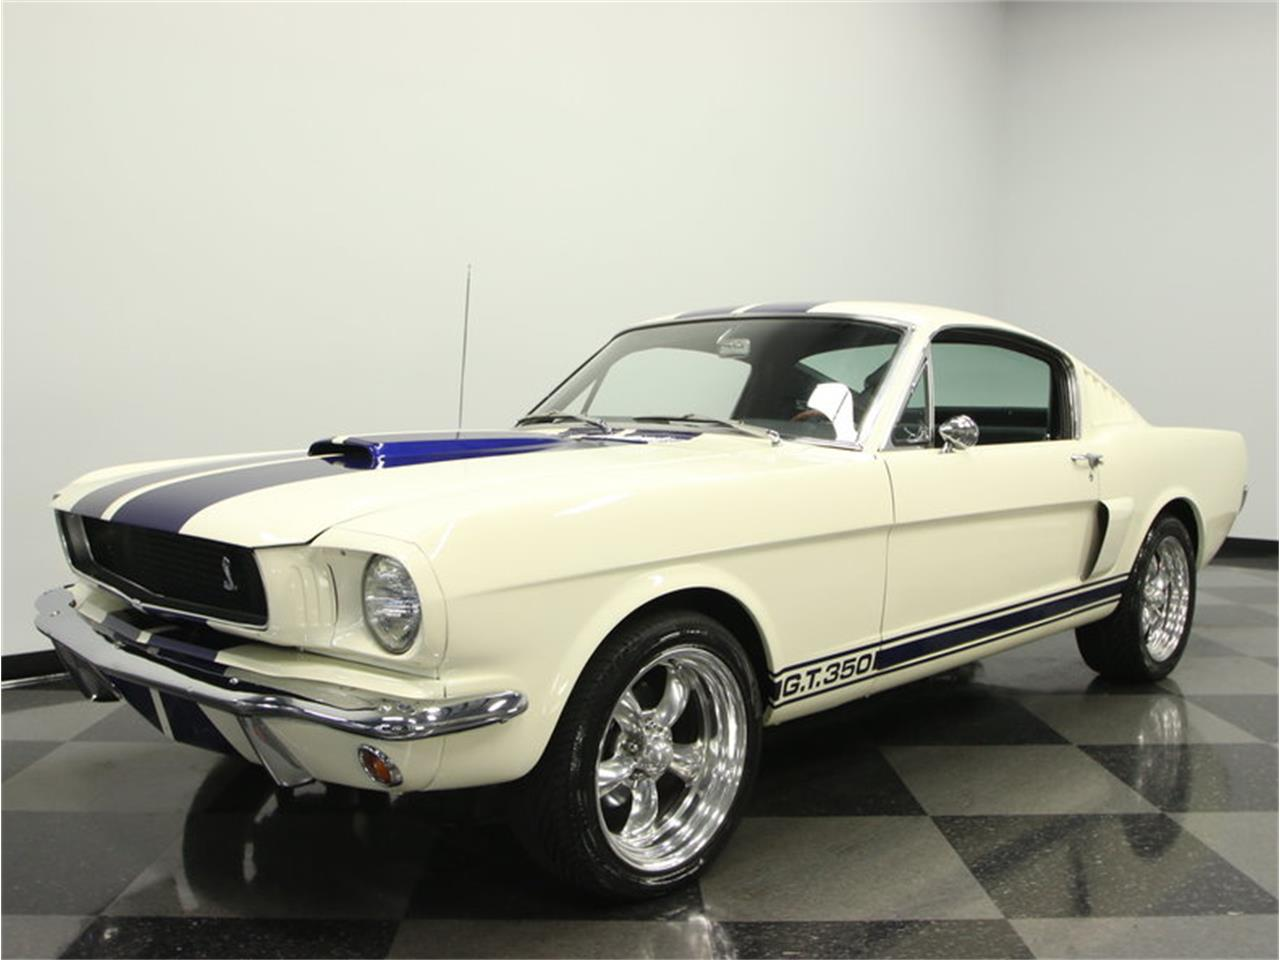 Large picture of 65 mustang shelby gt350 tribute jgw6